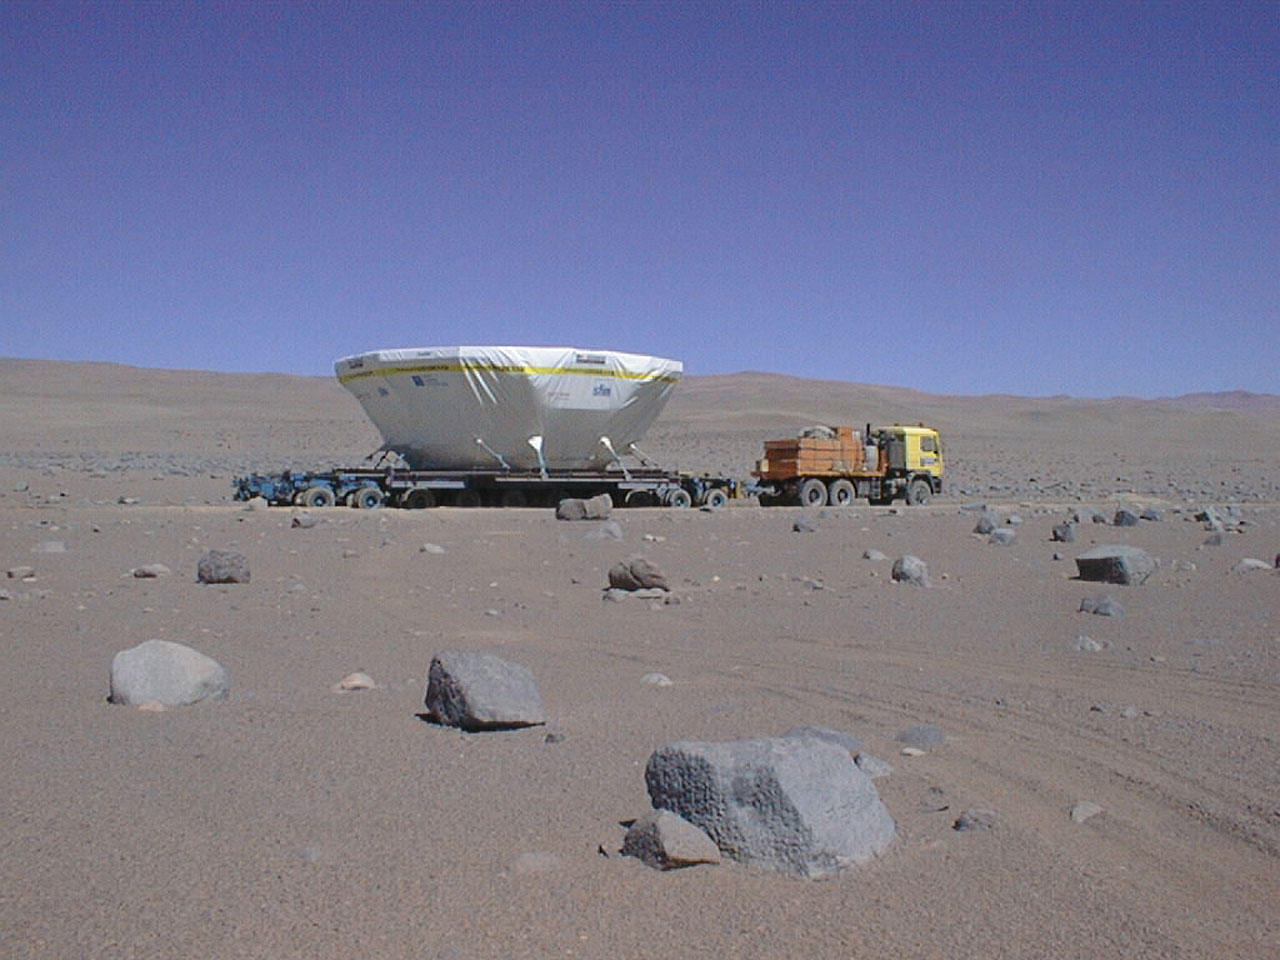 Atacama and the M1 Cell